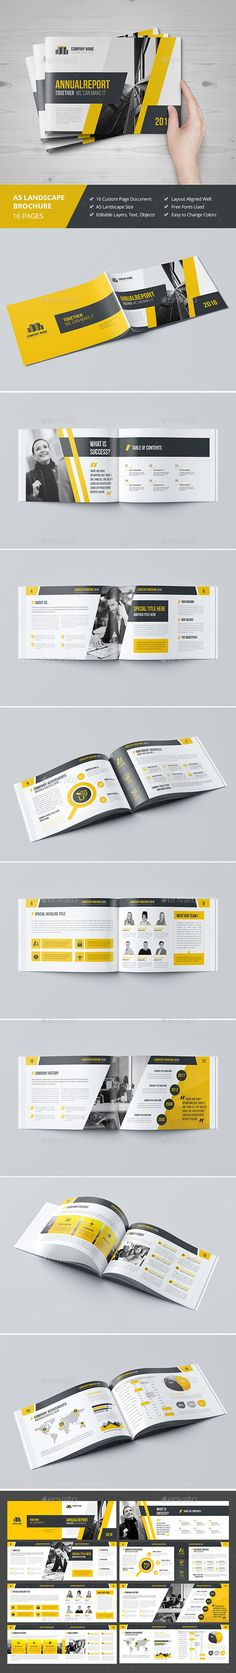 Haweya Landscape Brochure 16 Pages Template InDesign INDD. Download here: http://graphicriver.net/item/haweya-landscape-brochure-16-pages-v03/16748772?ref=ksioks